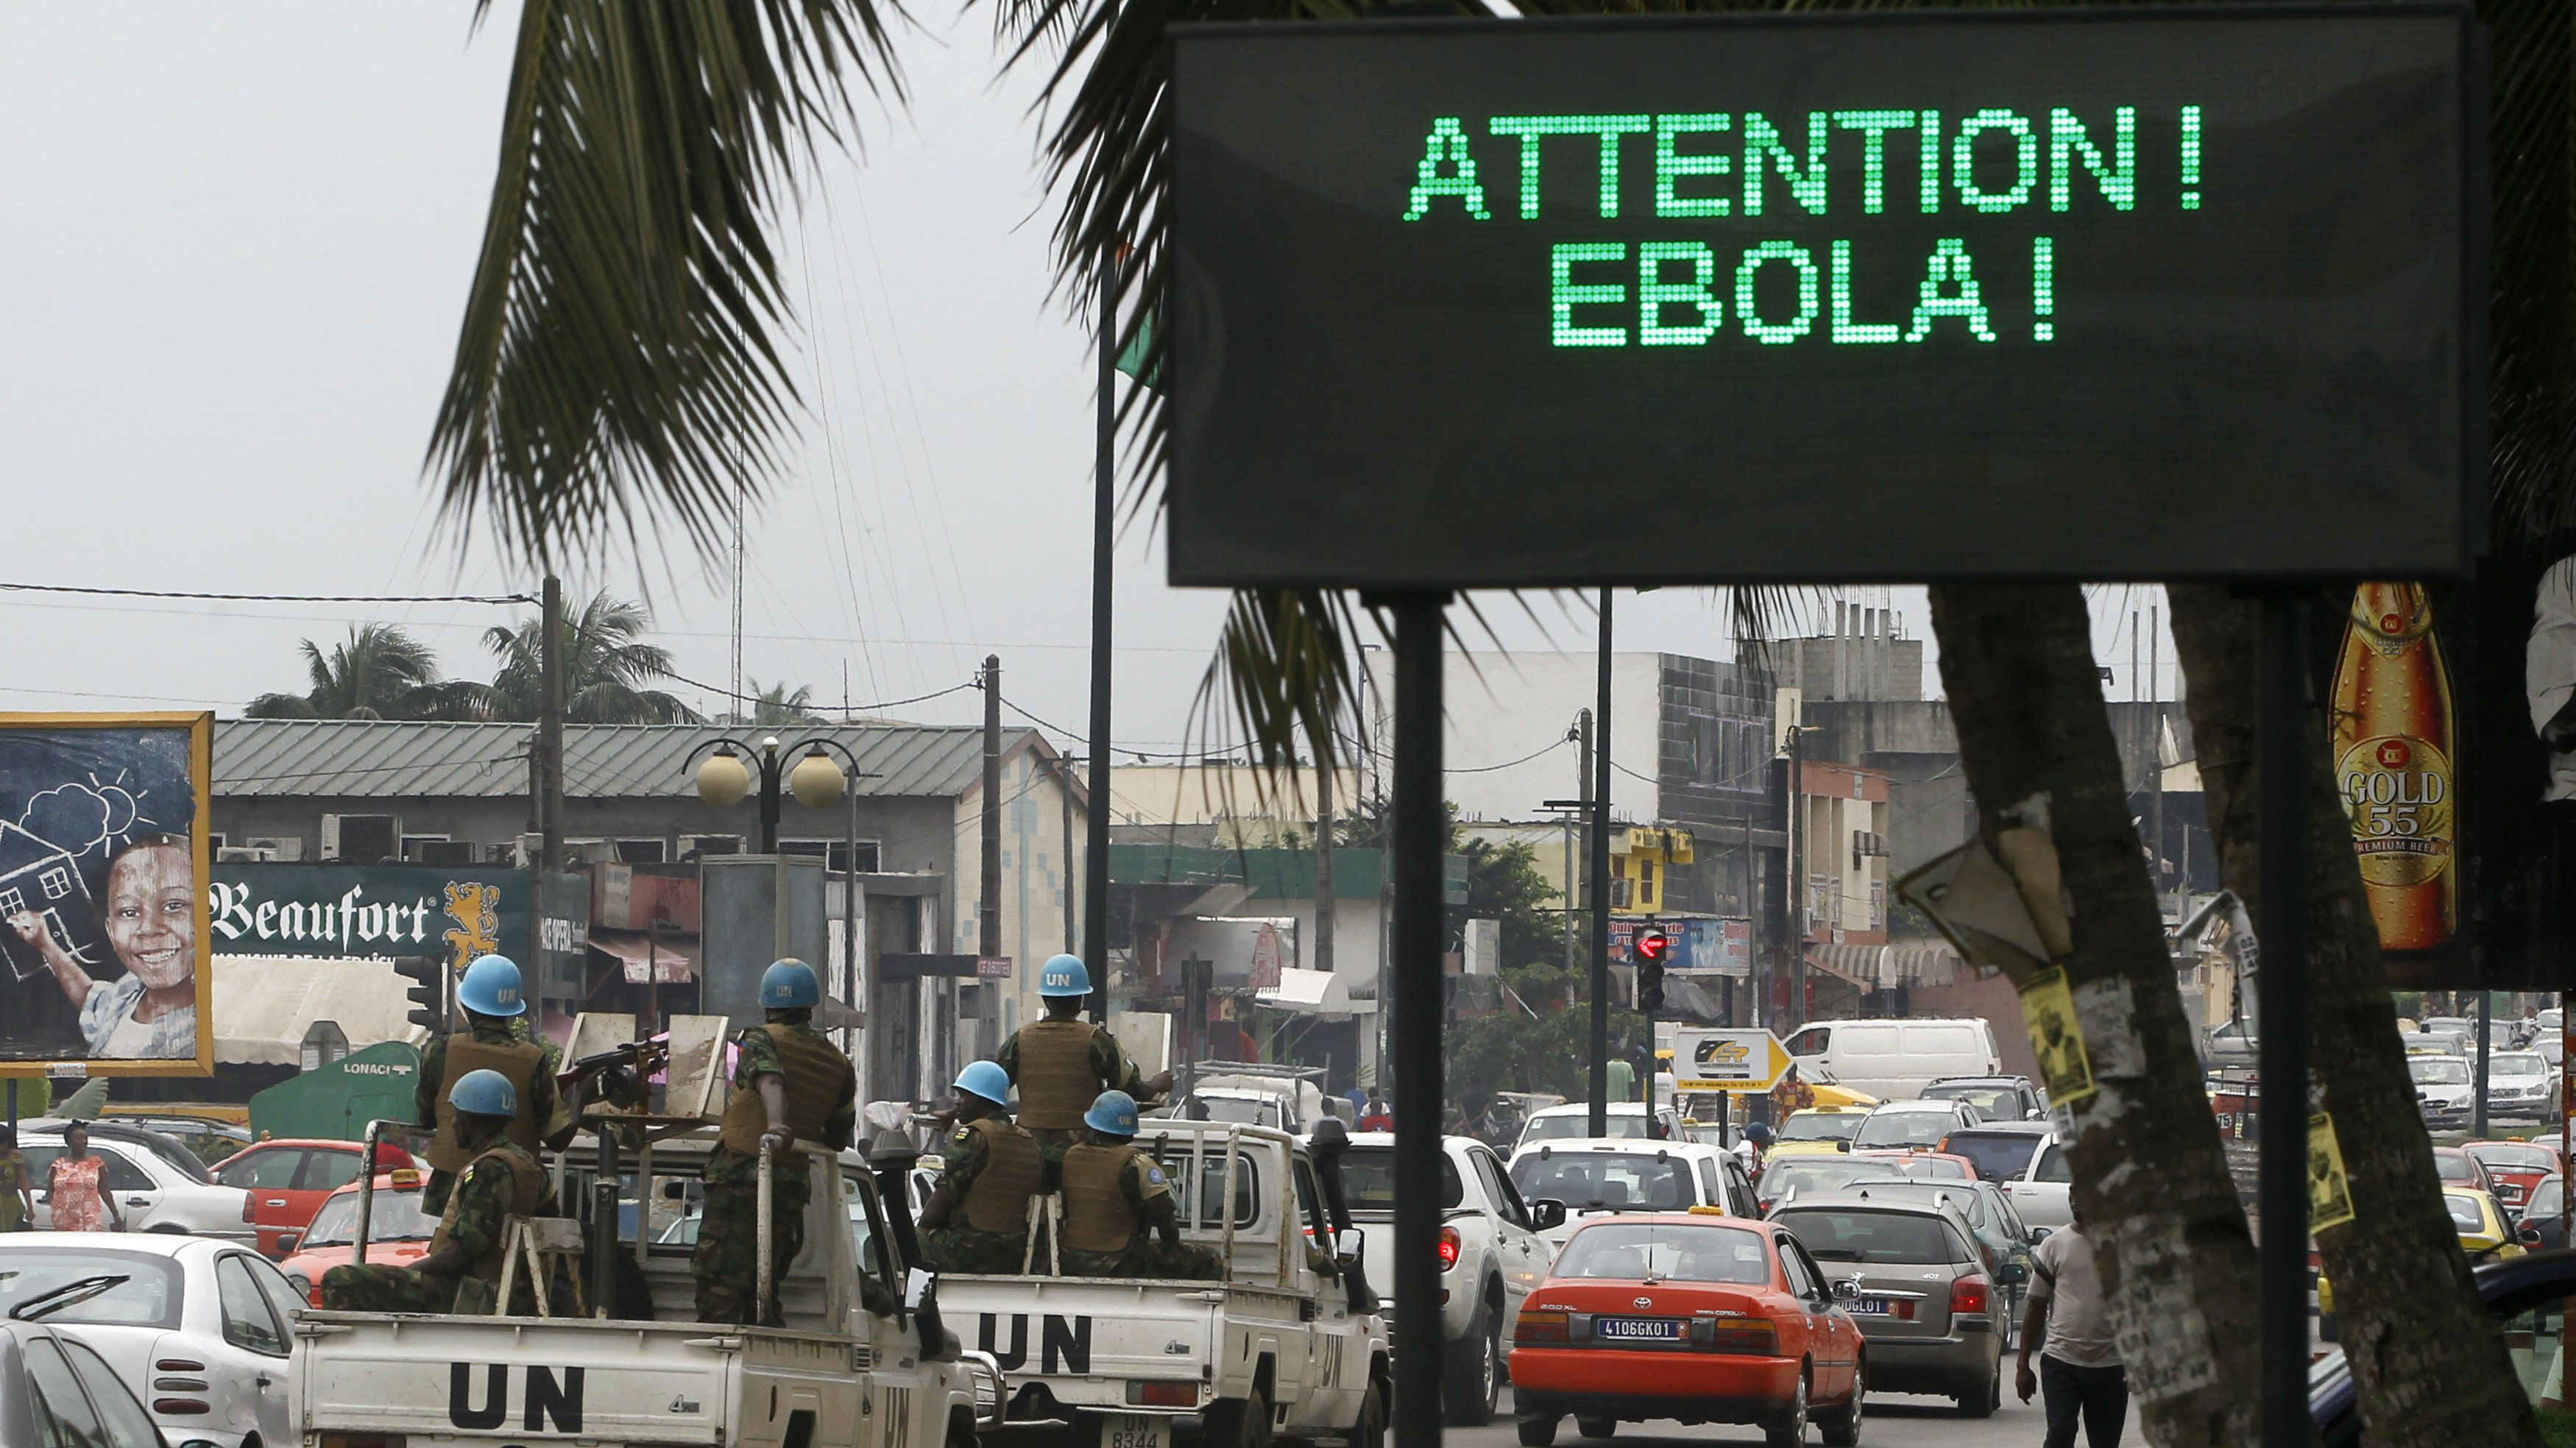 A U.N. convoy of soldiers passes a screen displaying a message on Ebola on a street in Abidjan August 14, 2014. The world's worst outbreak of Ebola has claimed the lives of 1,069 people and there are 1,975 probable and suspected cases, the vast majority in Guinea, Liberia and Sierra Leone, according to new figures from the World Health Organisation (WHO). Ivory Coast has recorded no cases of Ebola. REUTERS/Luc Gnago (IVORY COAST - Tags: HEALTH TRANSPORT TPX IMAGES OF THE DAY)